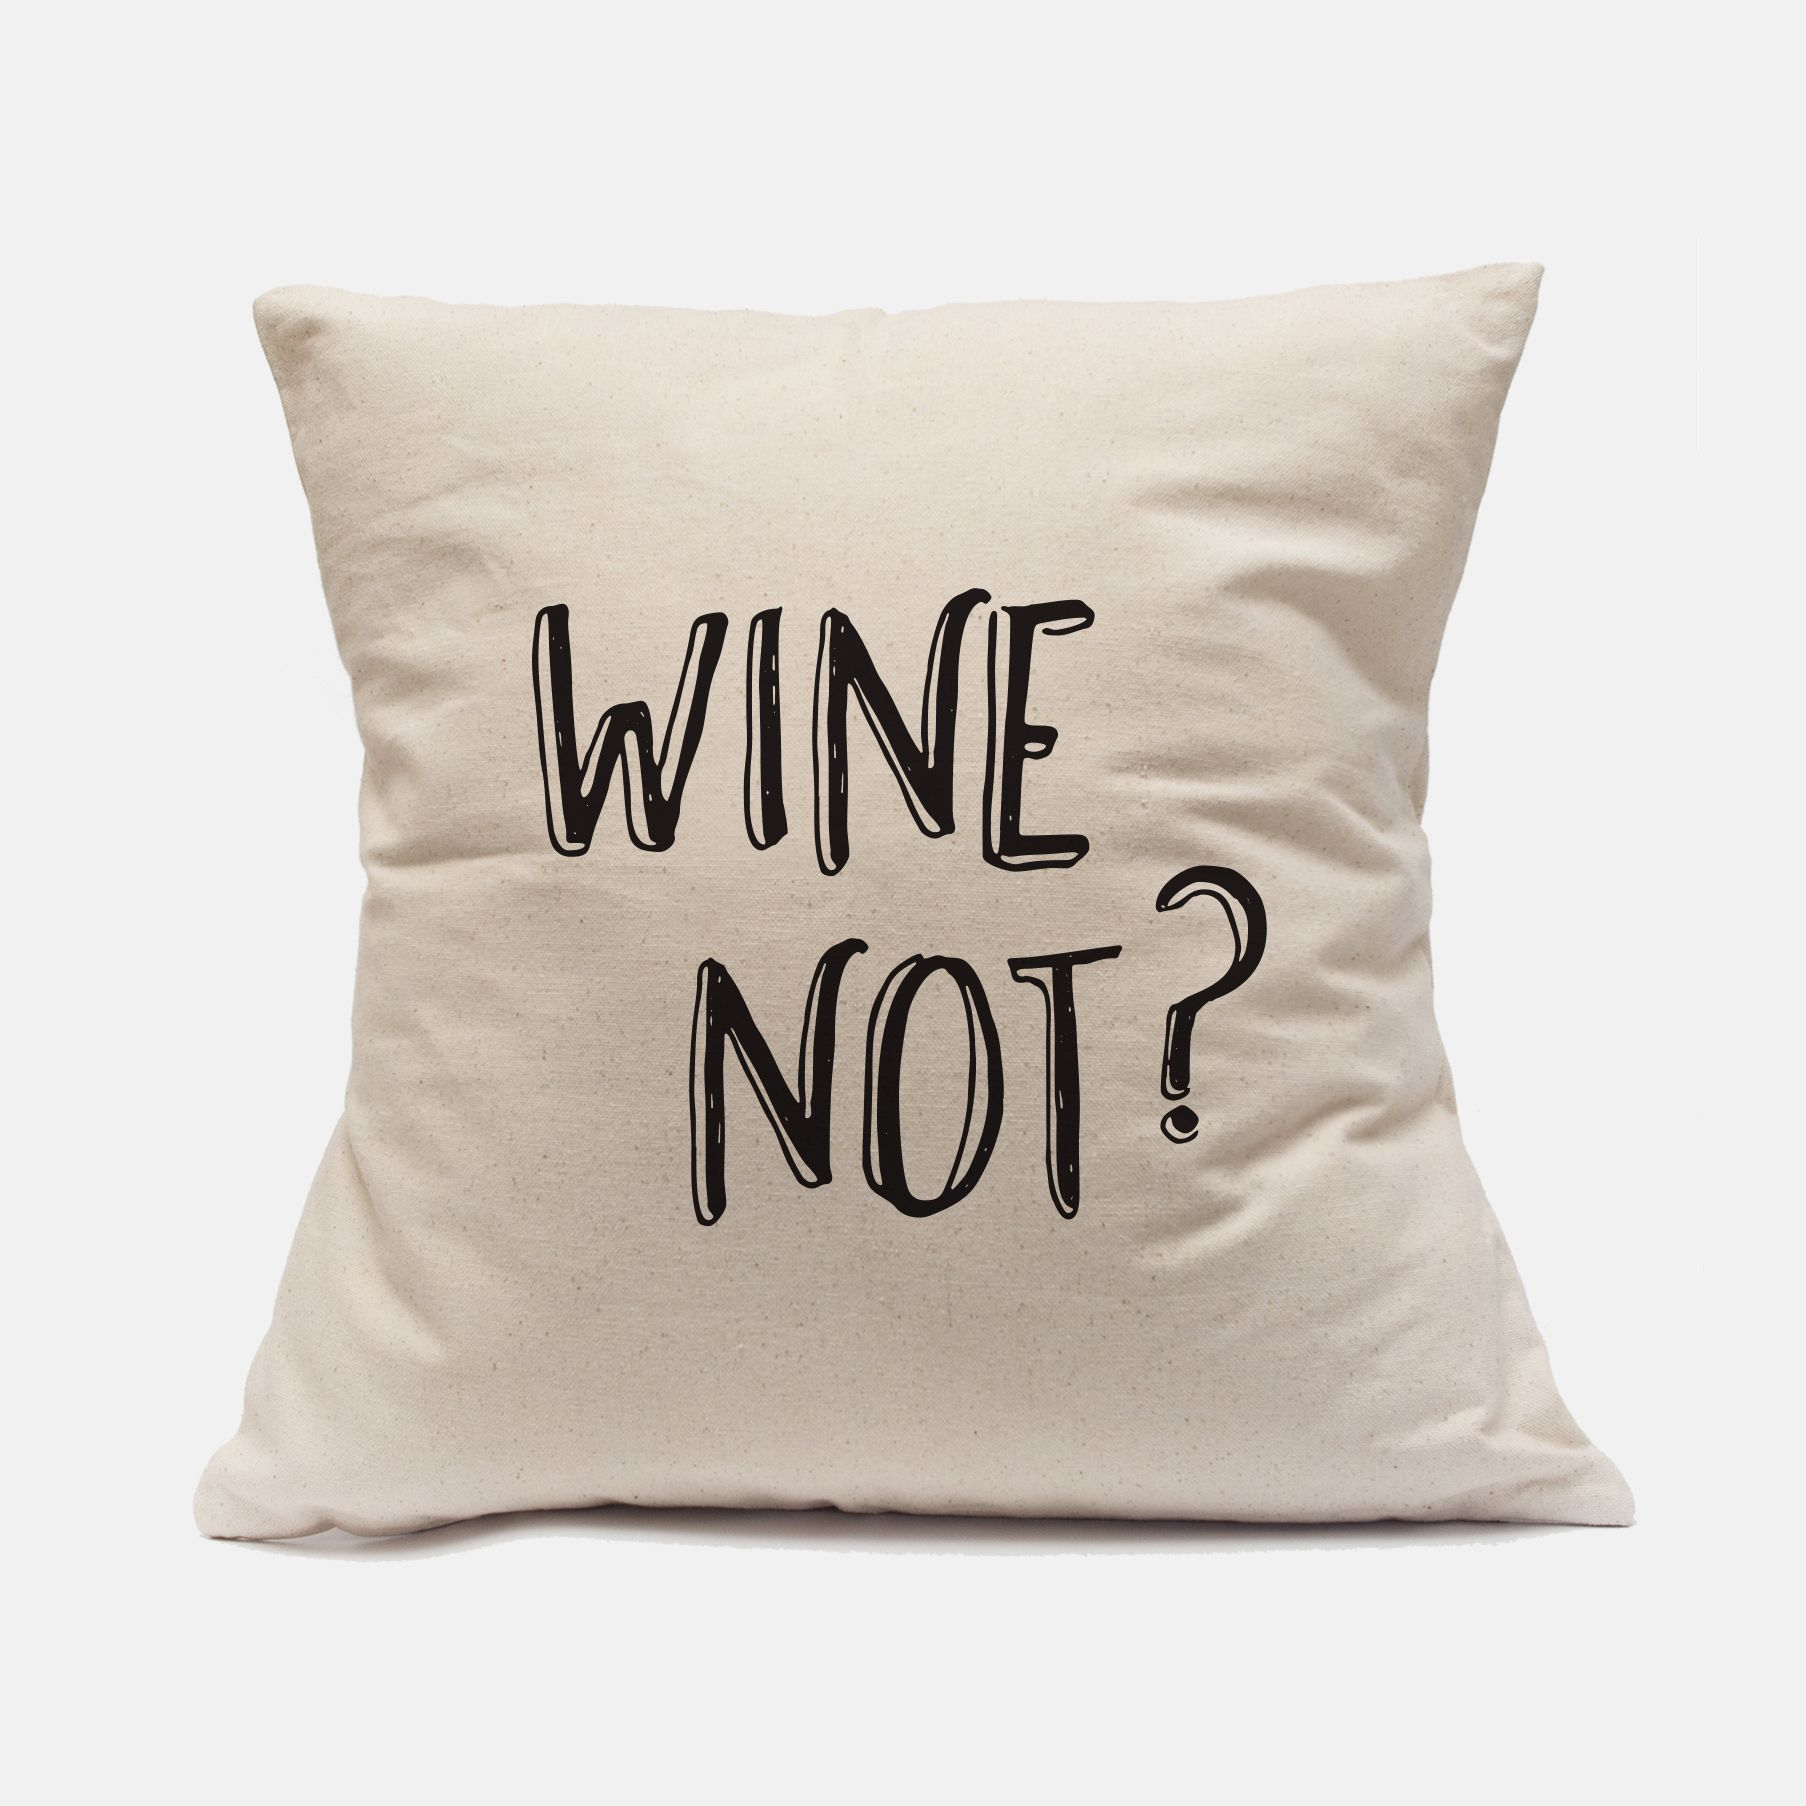 Wine Not Pillow Case Wine Not Pillows Wine Pillow Case Wine Pillows Funny Pillows Funny Pillow Case Wine Quotes Wine Quote